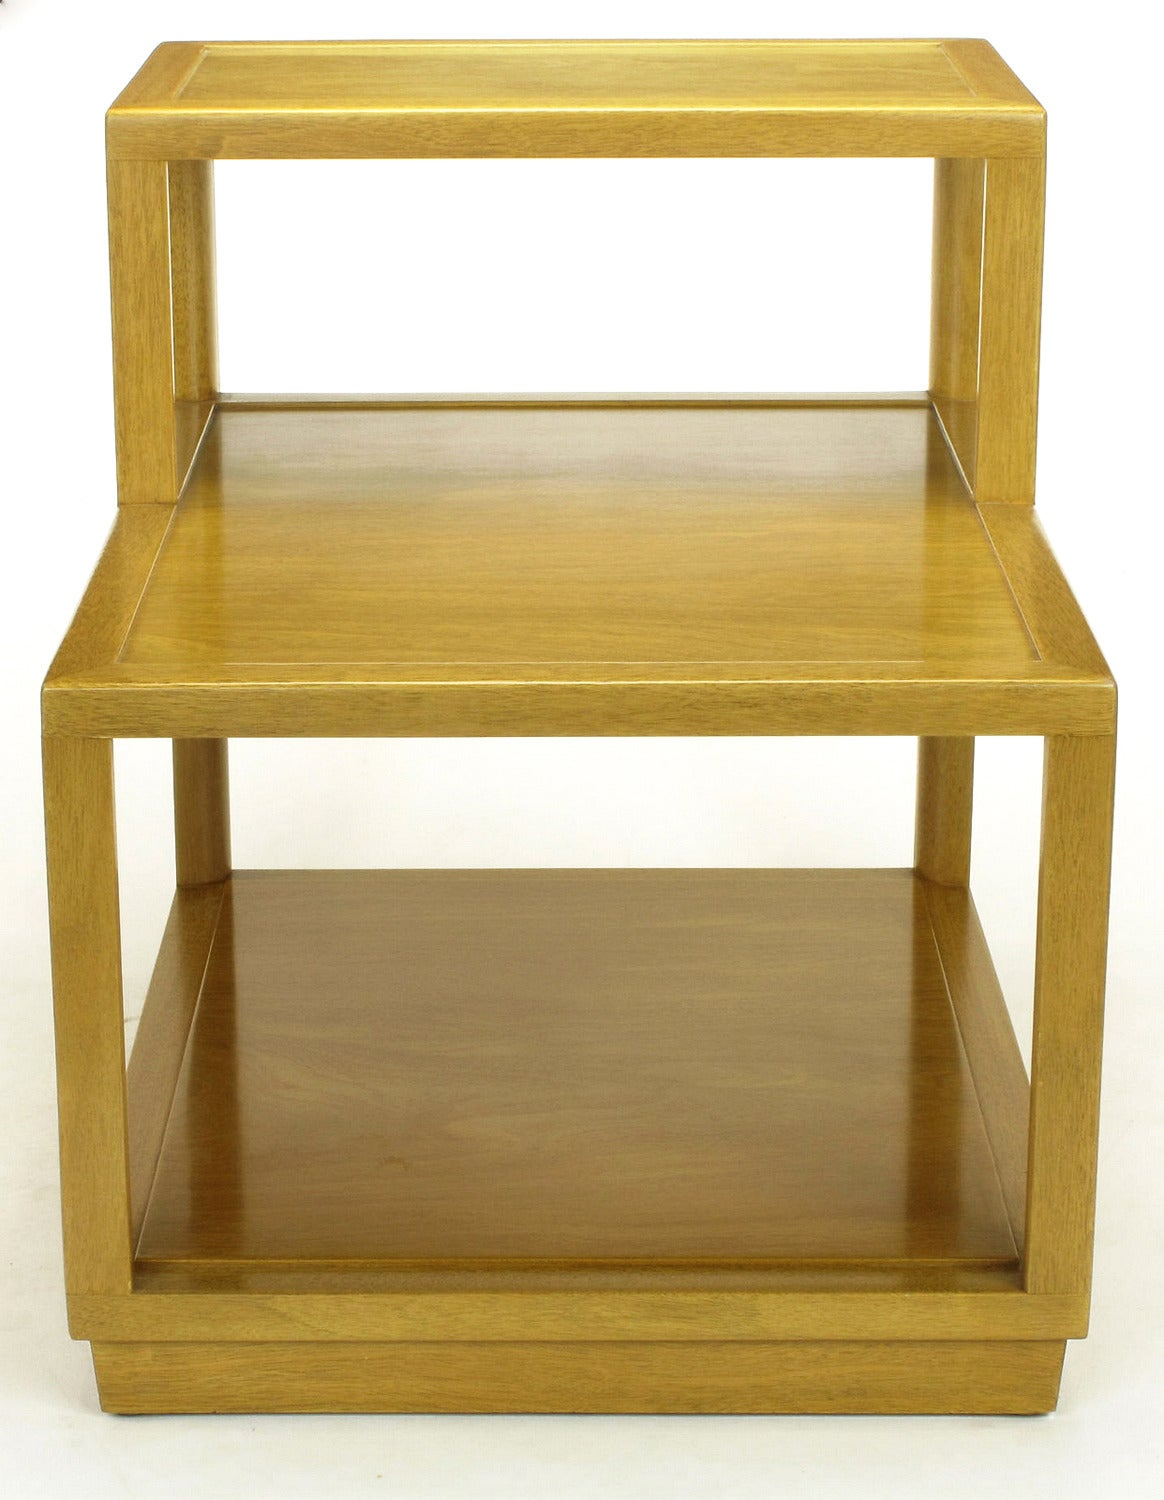 Edward Wormley Bleached Mahogany Tiered End Table for Dunbar 2